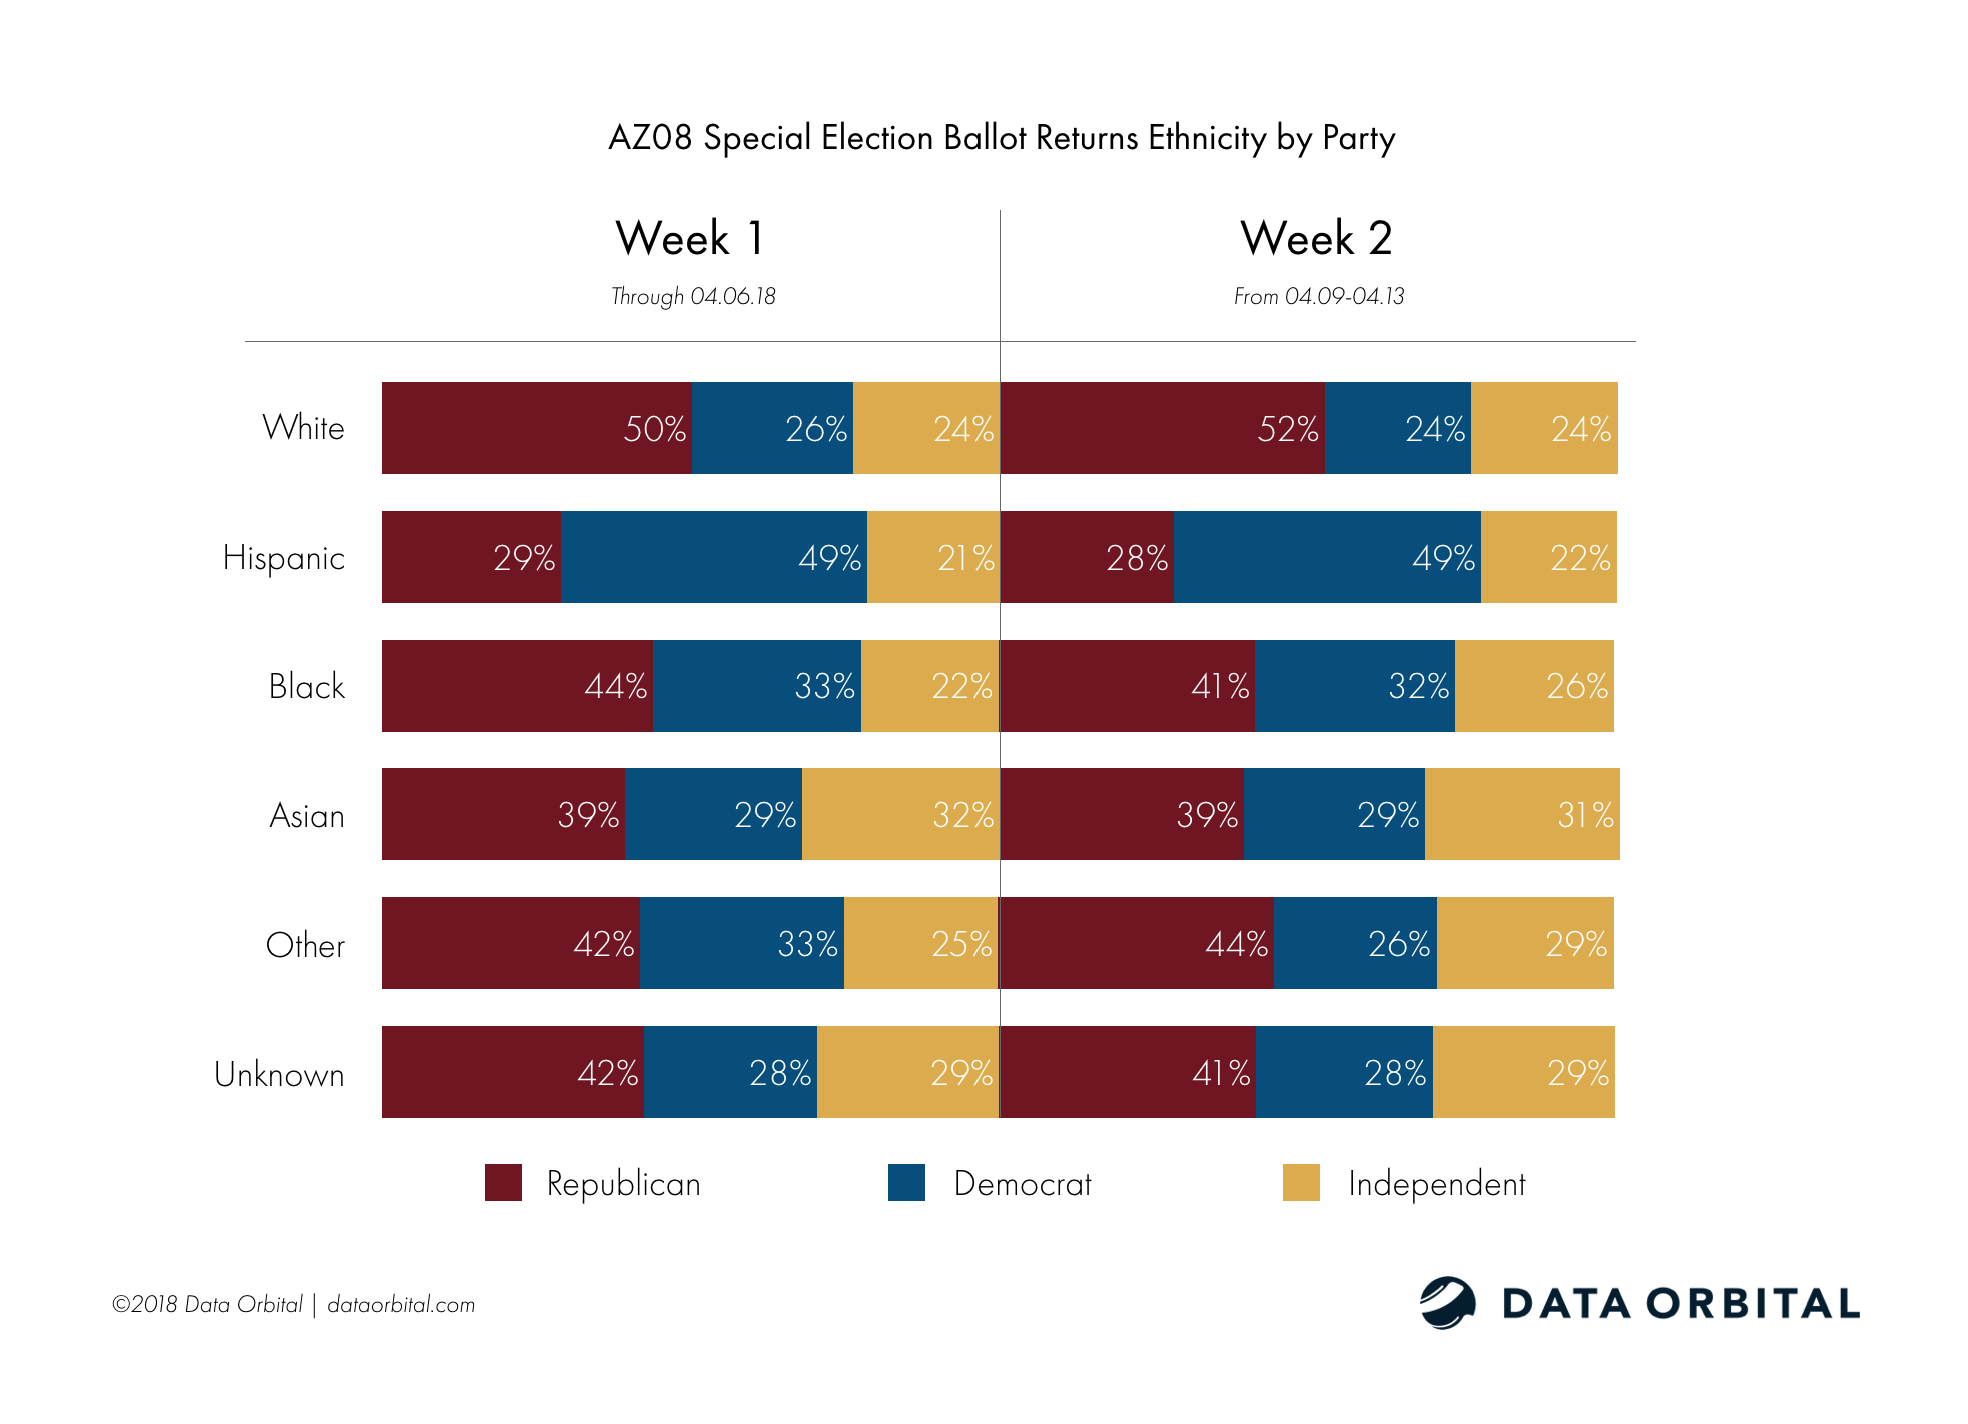 AZ08 Special Election Week 2 Wrap Up and Analysis Ethnicity by Party Week 1-2 Comparison